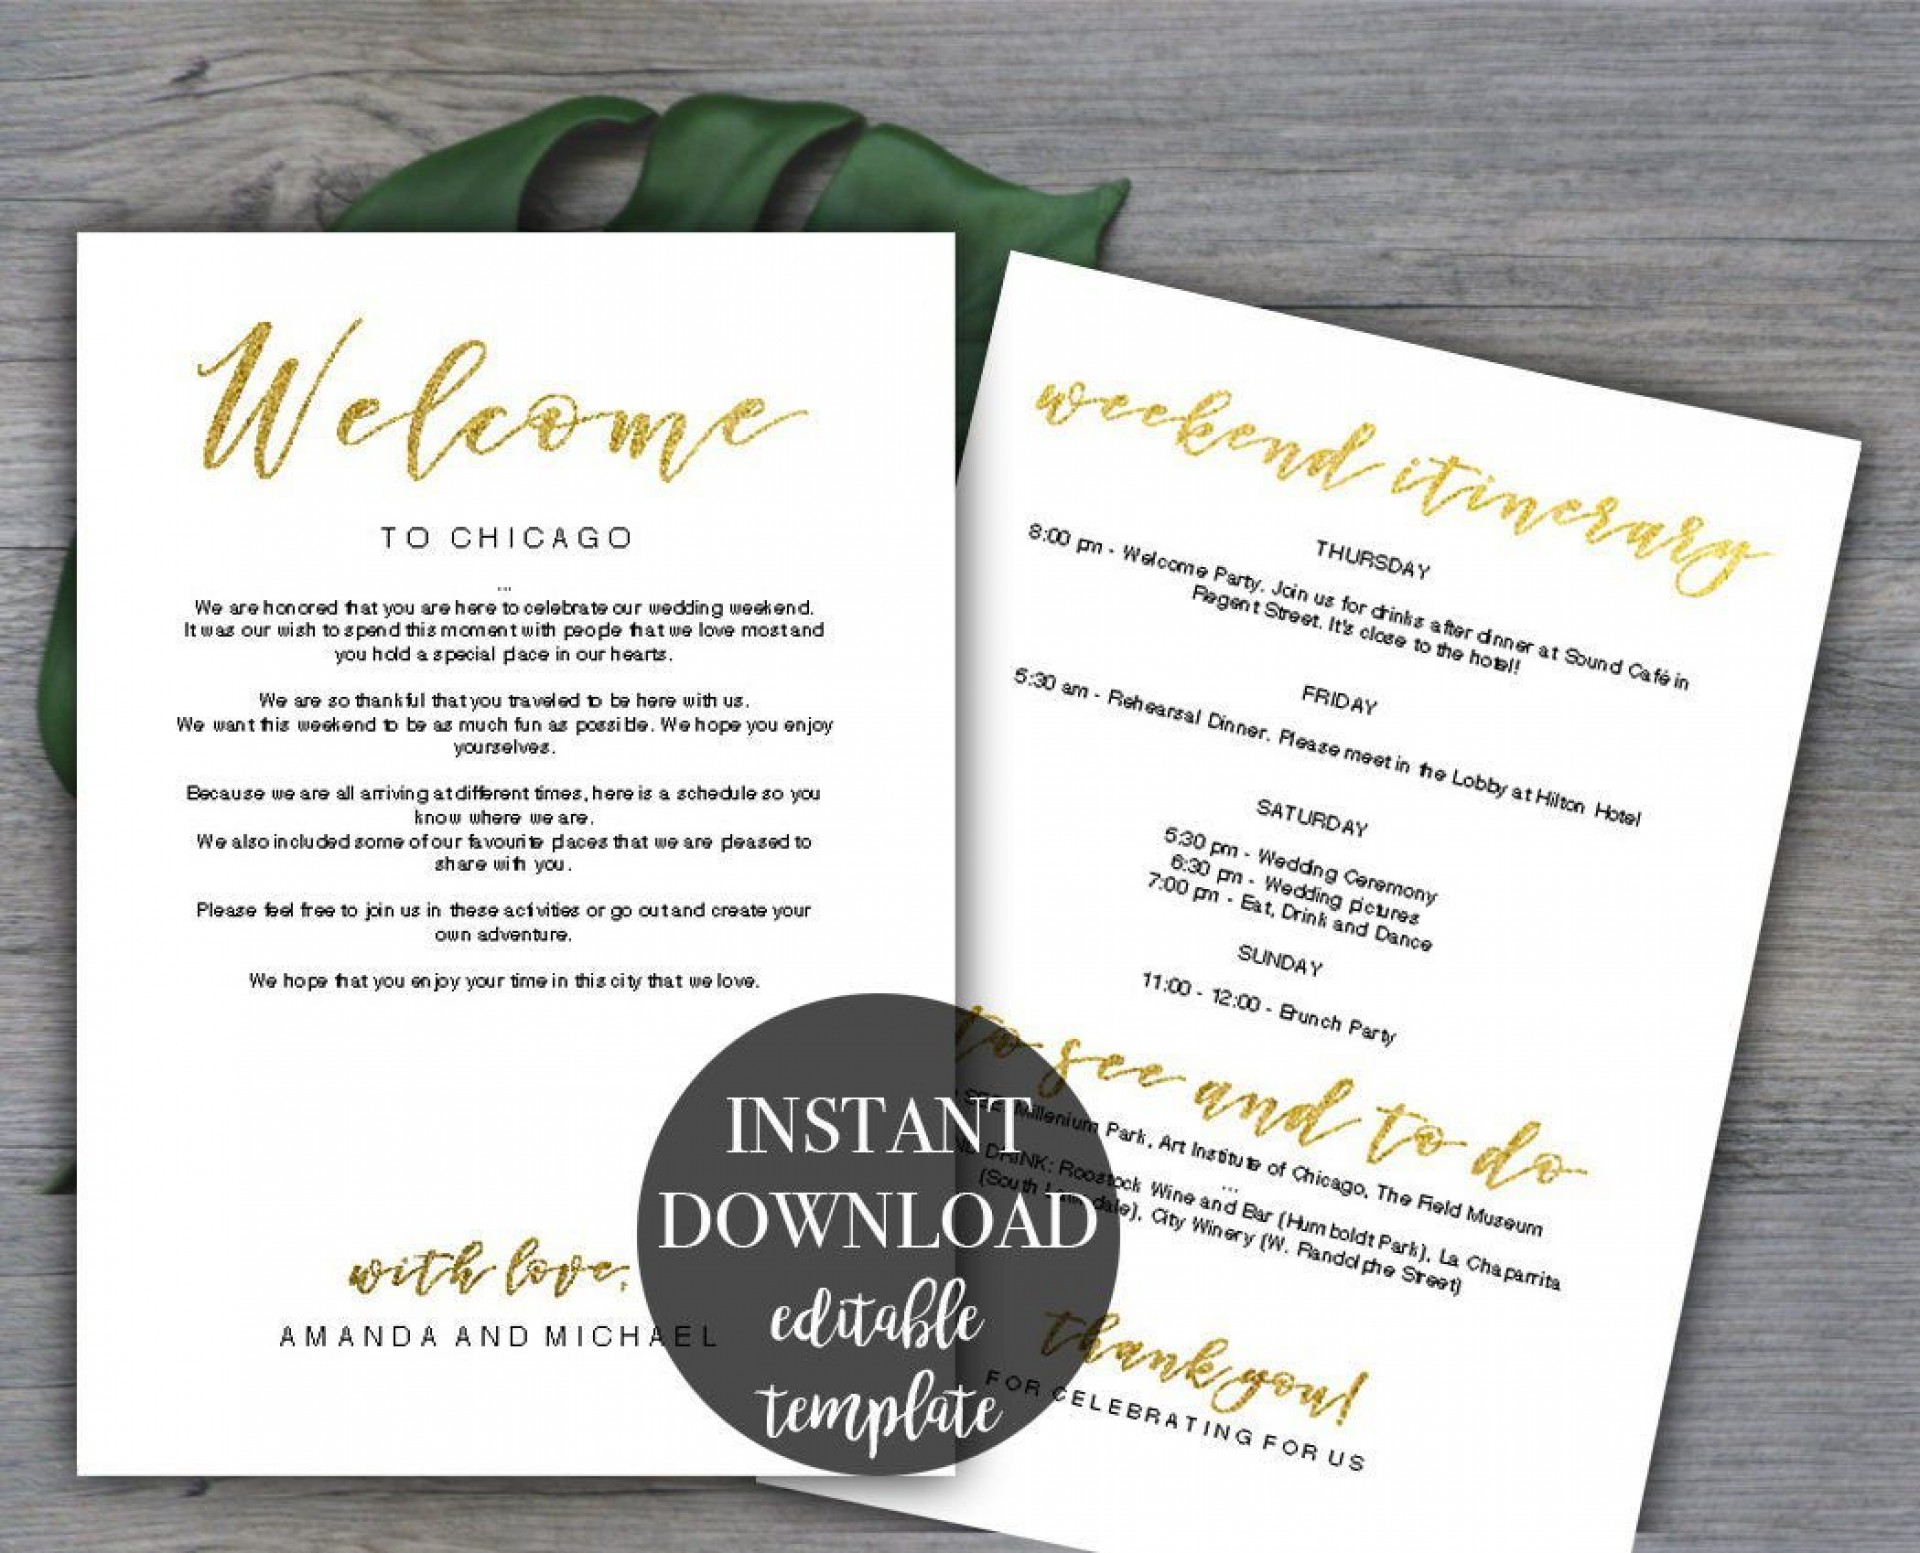 009 Top Destination Wedding Welcome Letter And Itinerary Template Concept 1920